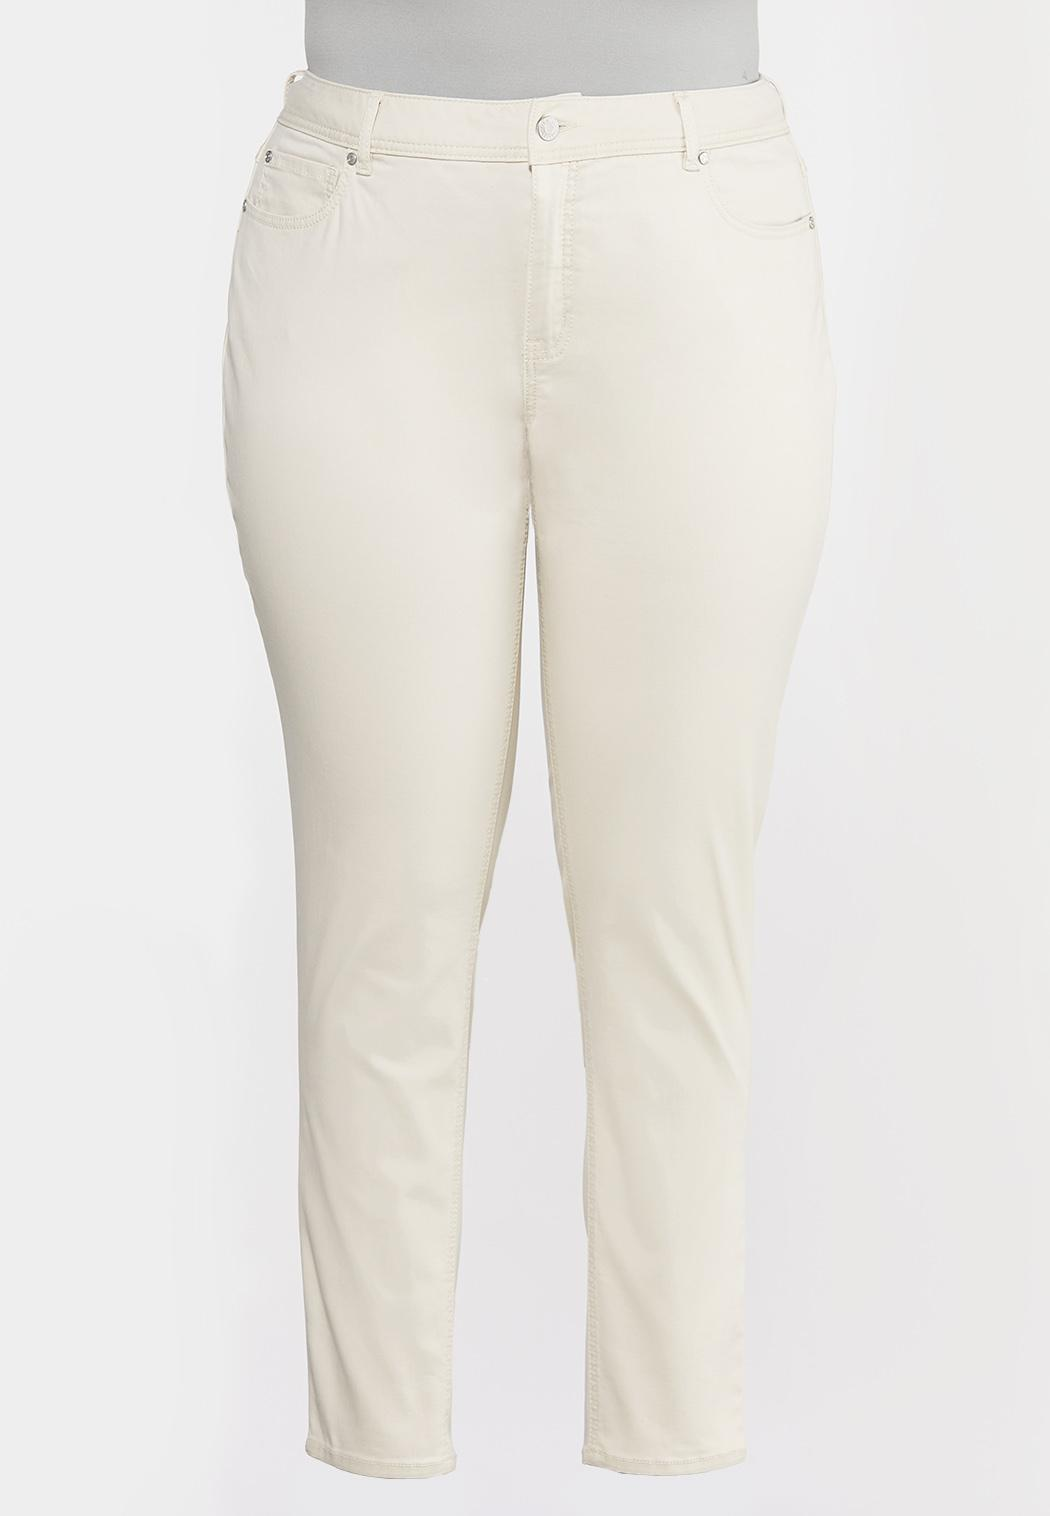 Plus Size High-Rise Colored Skinny Jeans